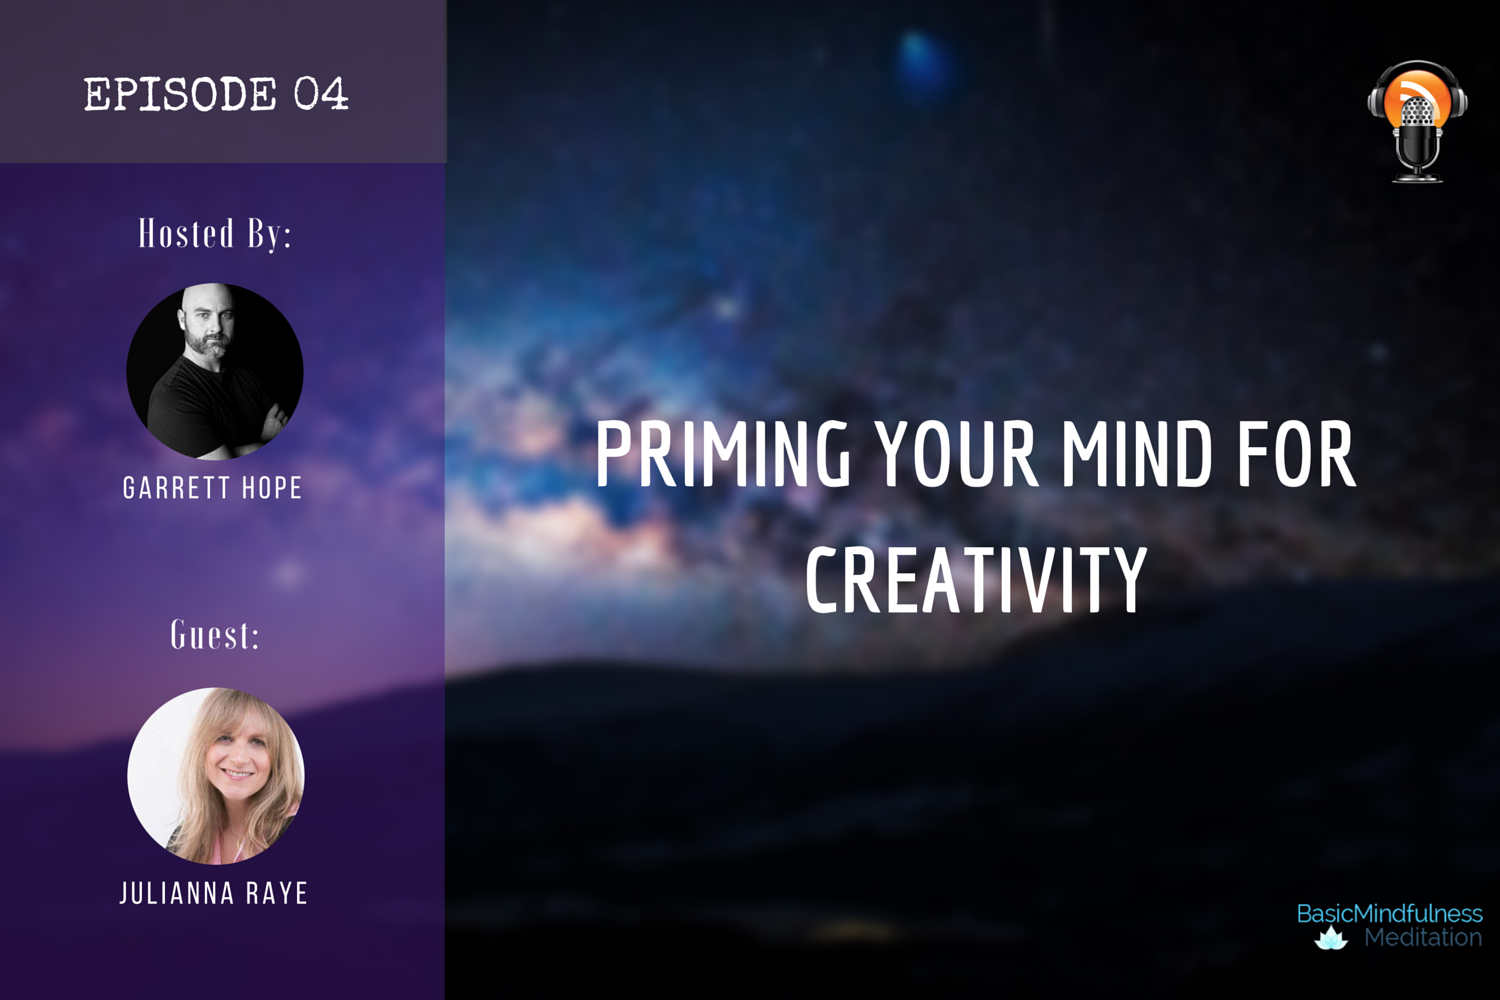 priming your mind for creativity